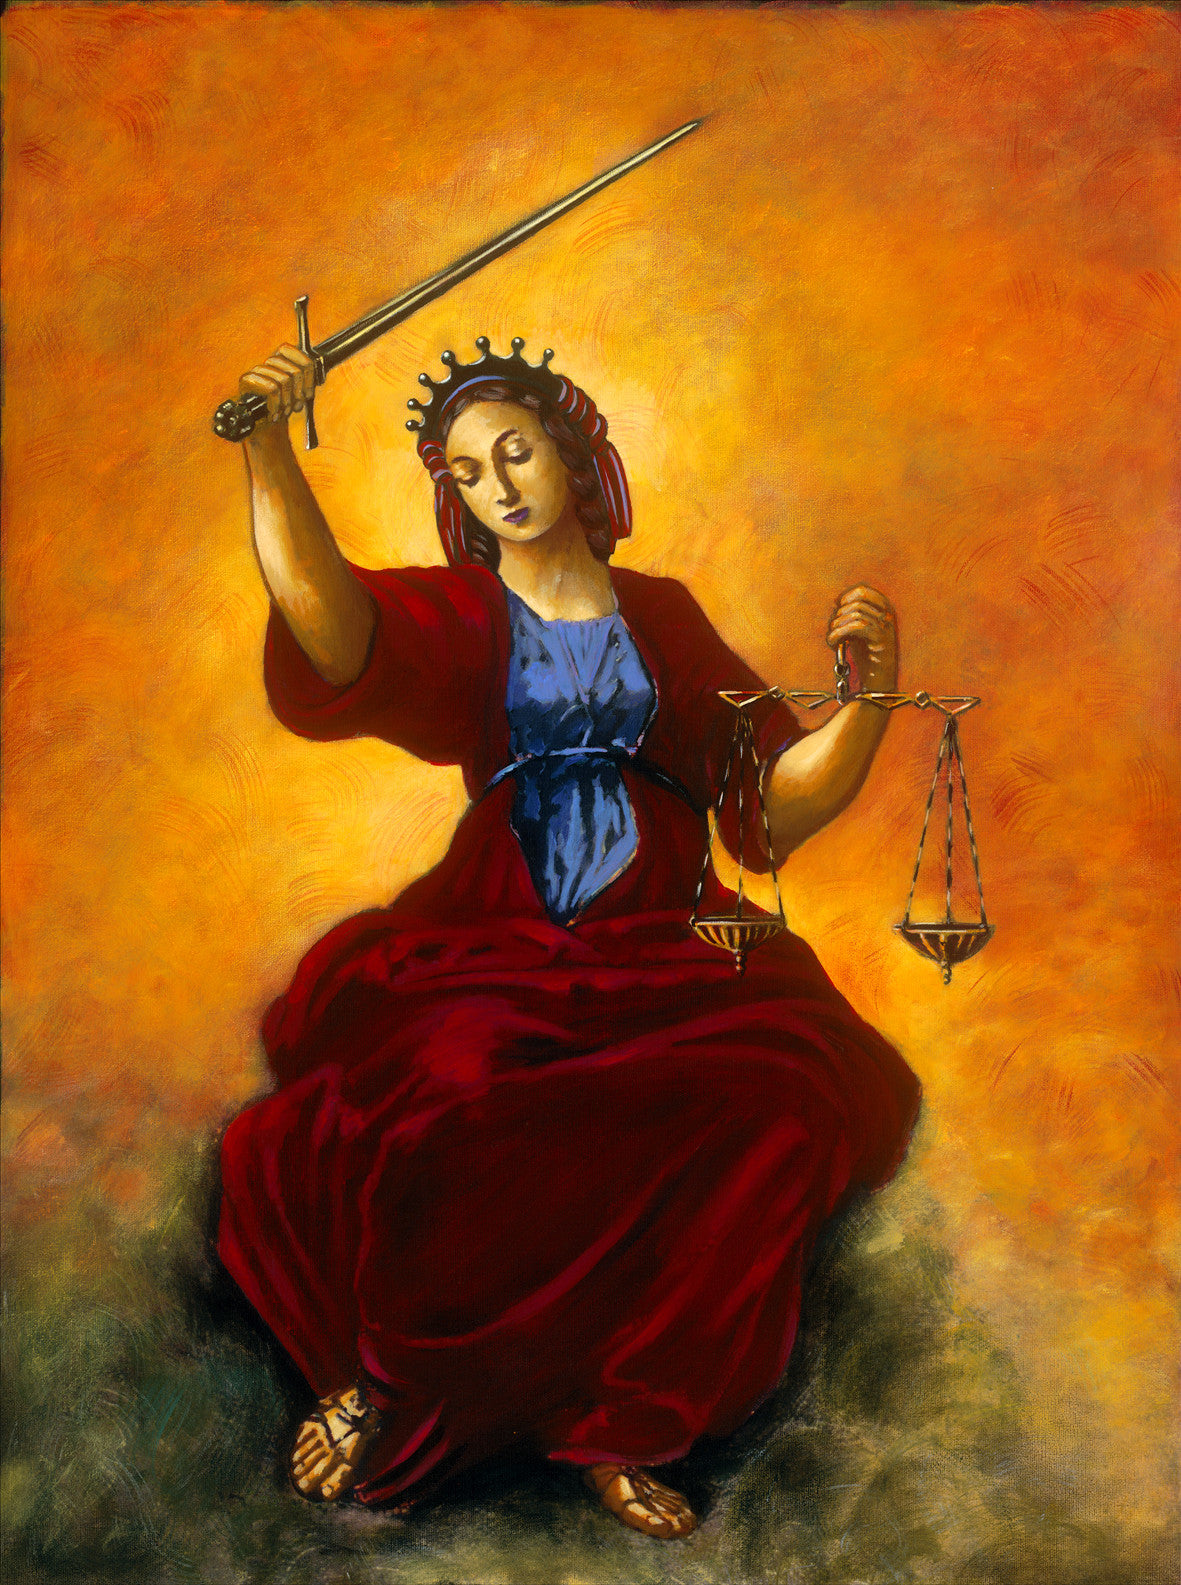 Classic Rennaissance image of justice after Raphael. by artist Trevor Goring